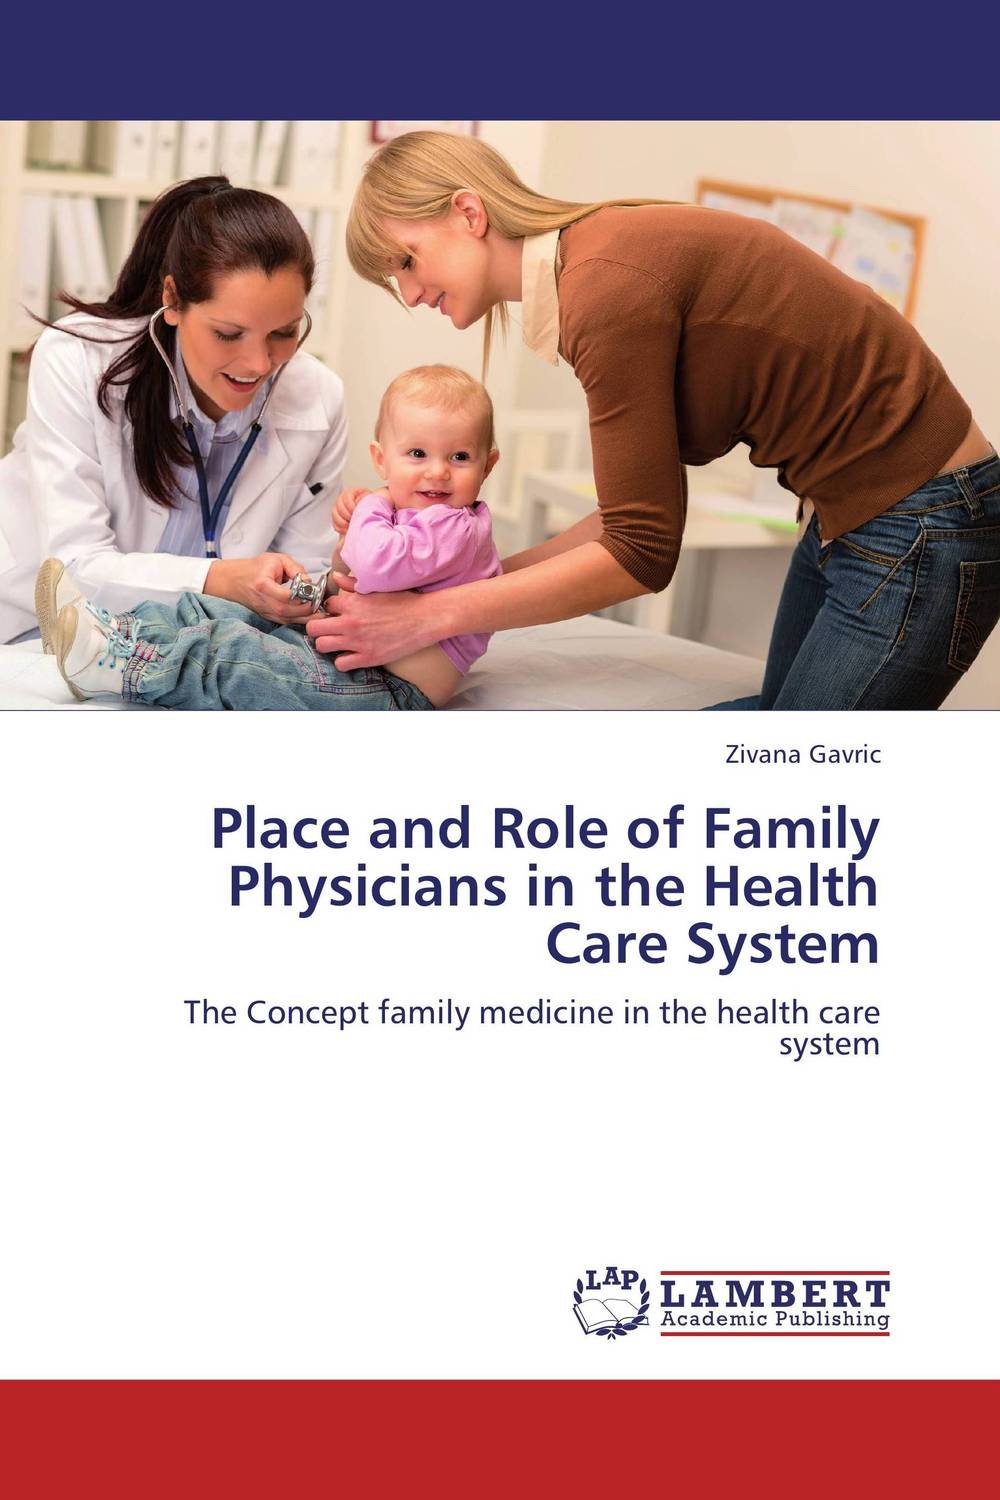 Place and Role of Family Physicians in the Health Care System jason burke health analytics gaining the insights to transform health care